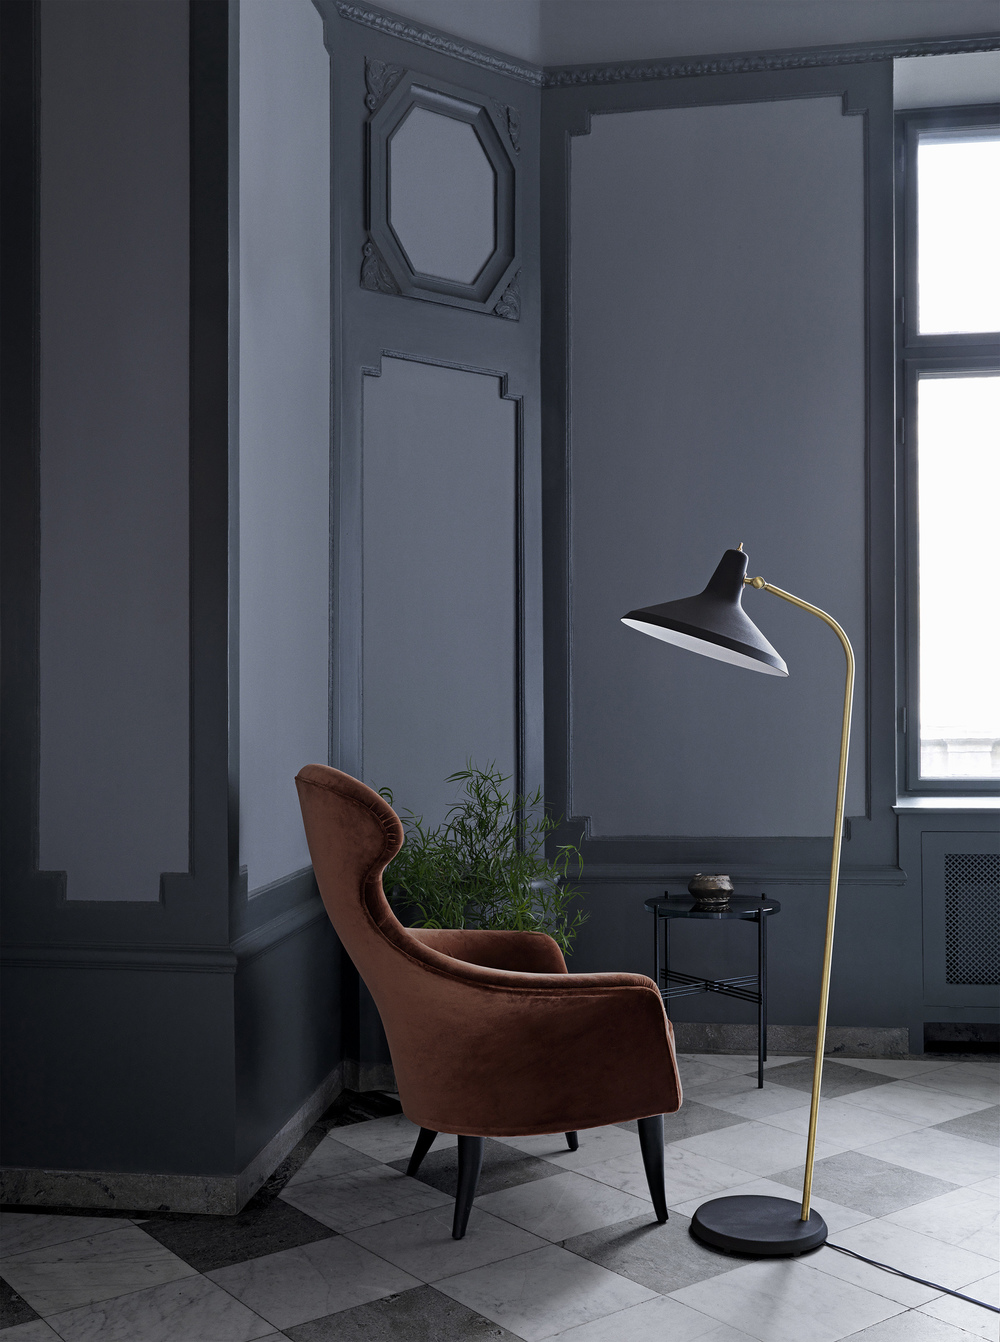 Eva chair - Velluto di Cotone 641 _G10 floor lamp - matt black_TS table Ø40 - granite black.jpg